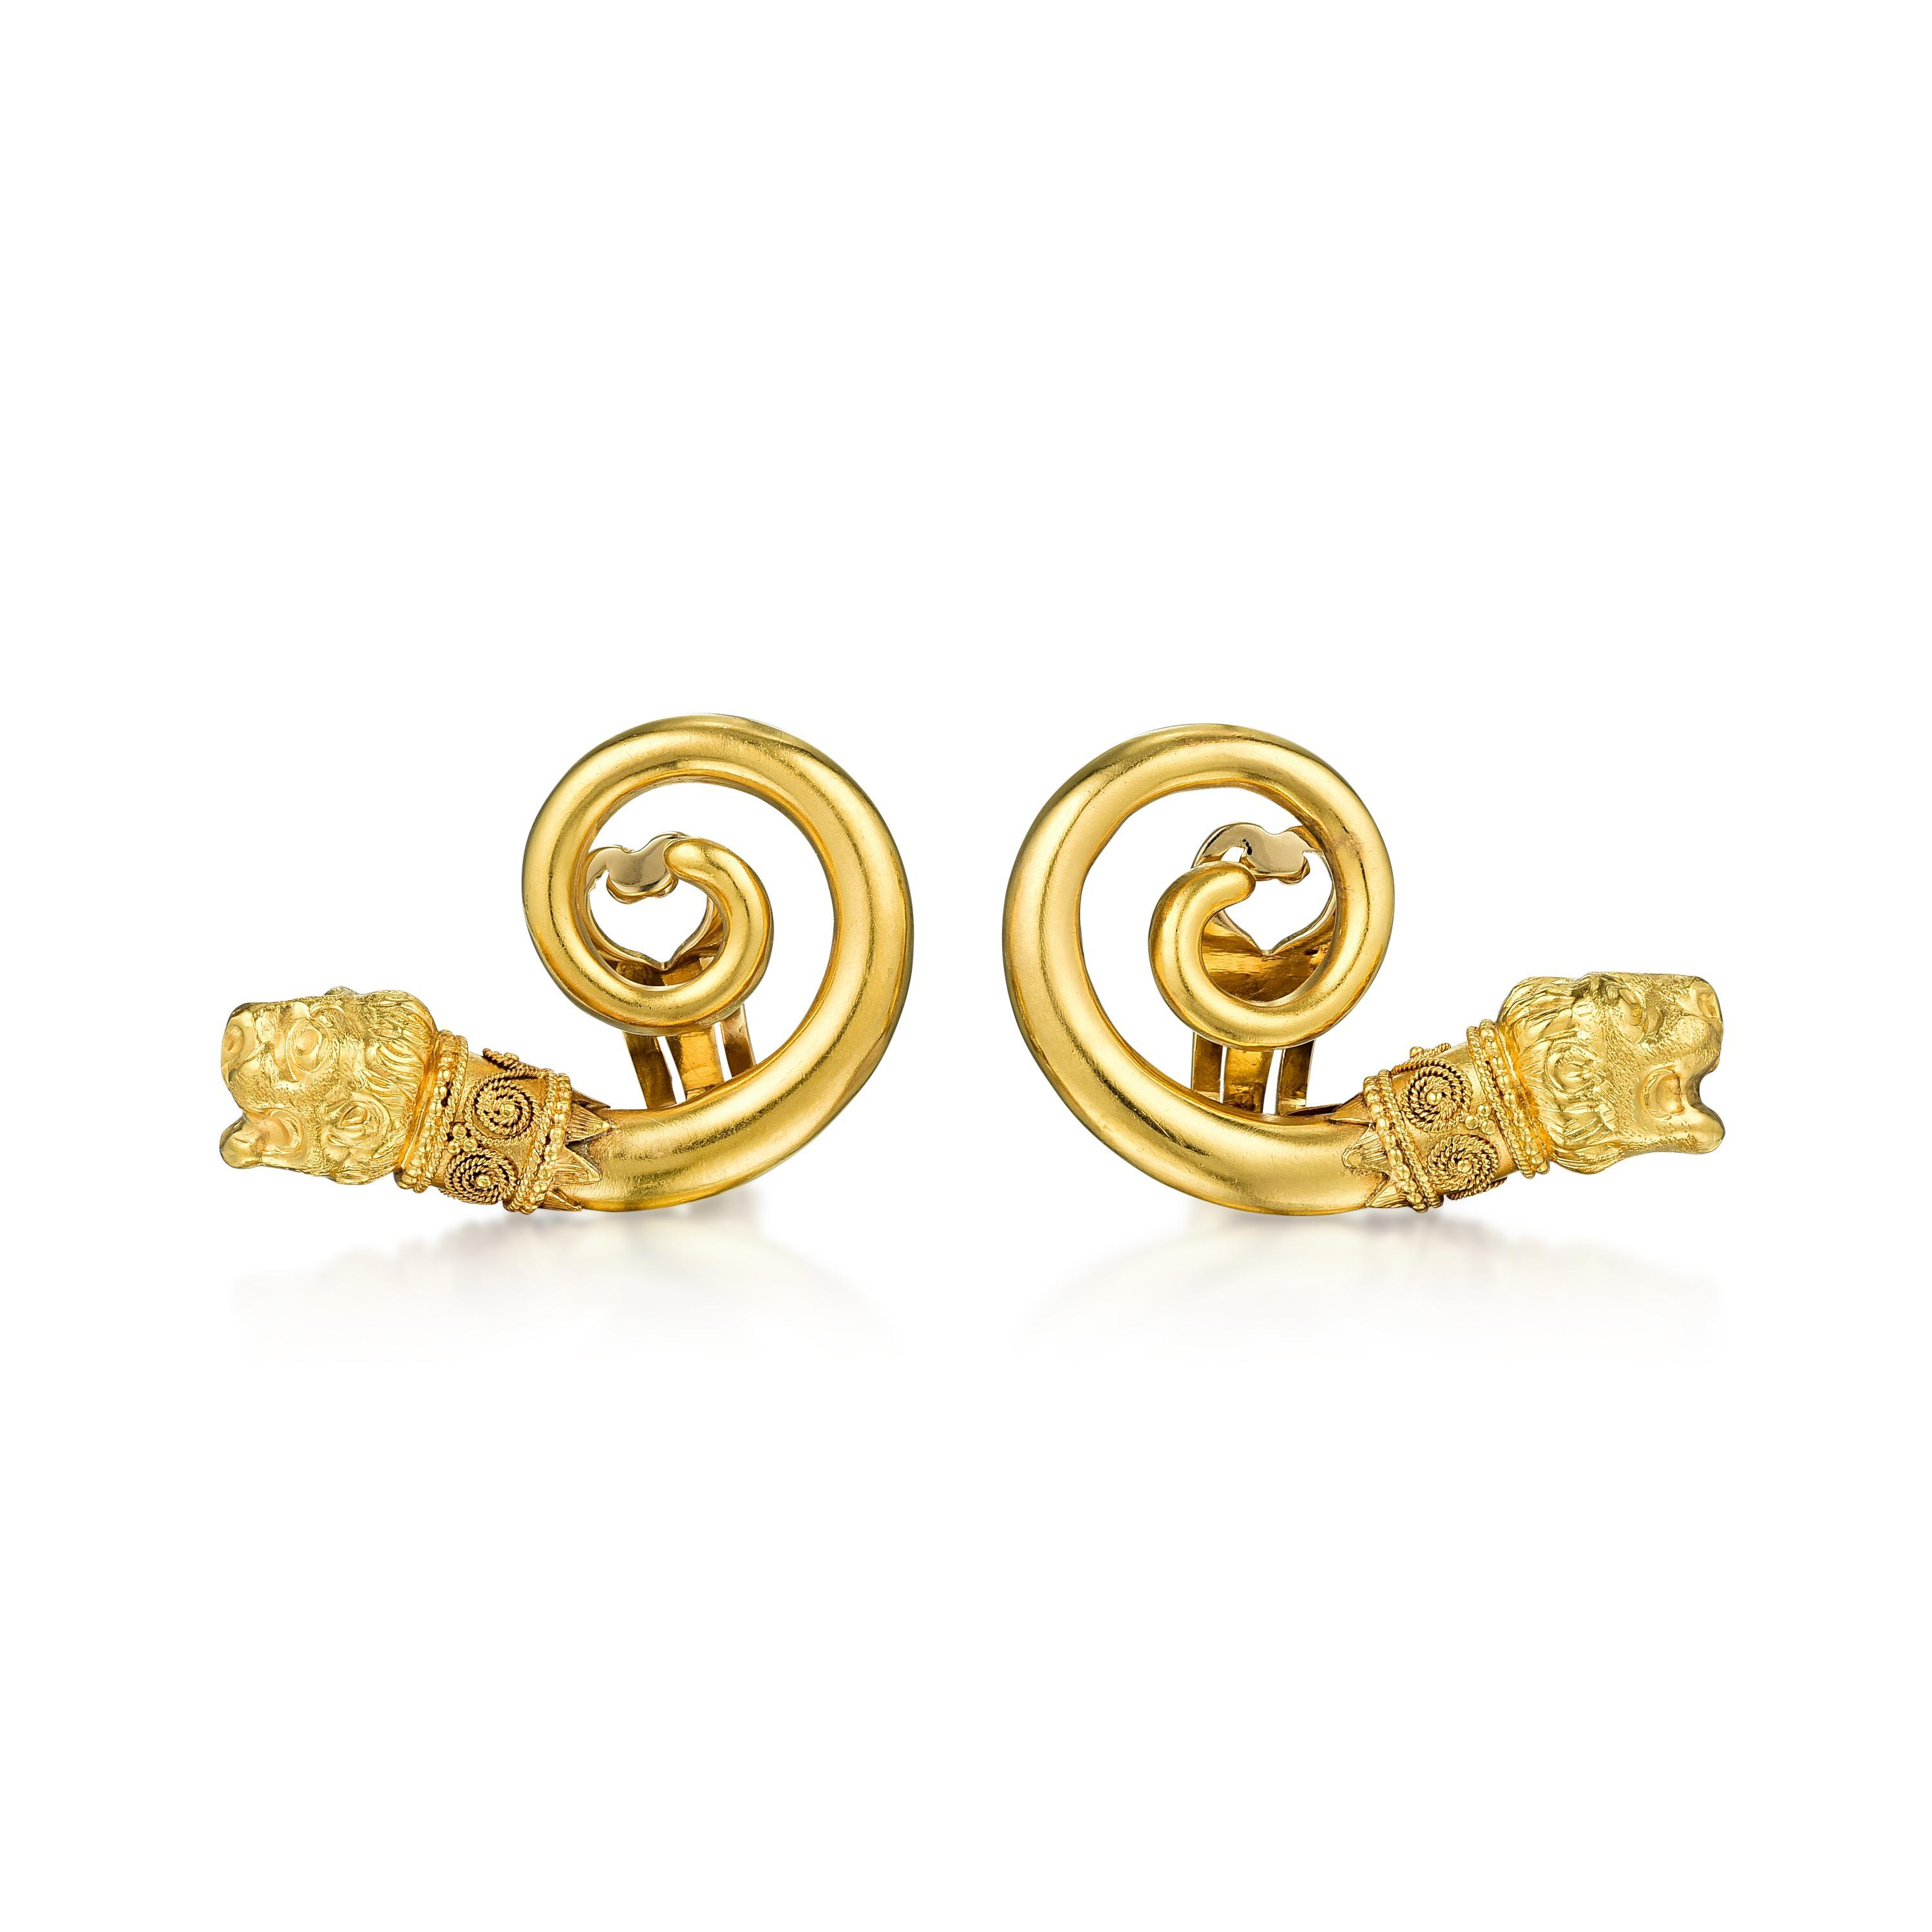 Lalaounis Gold Earclips- Fortuna Auction NYC